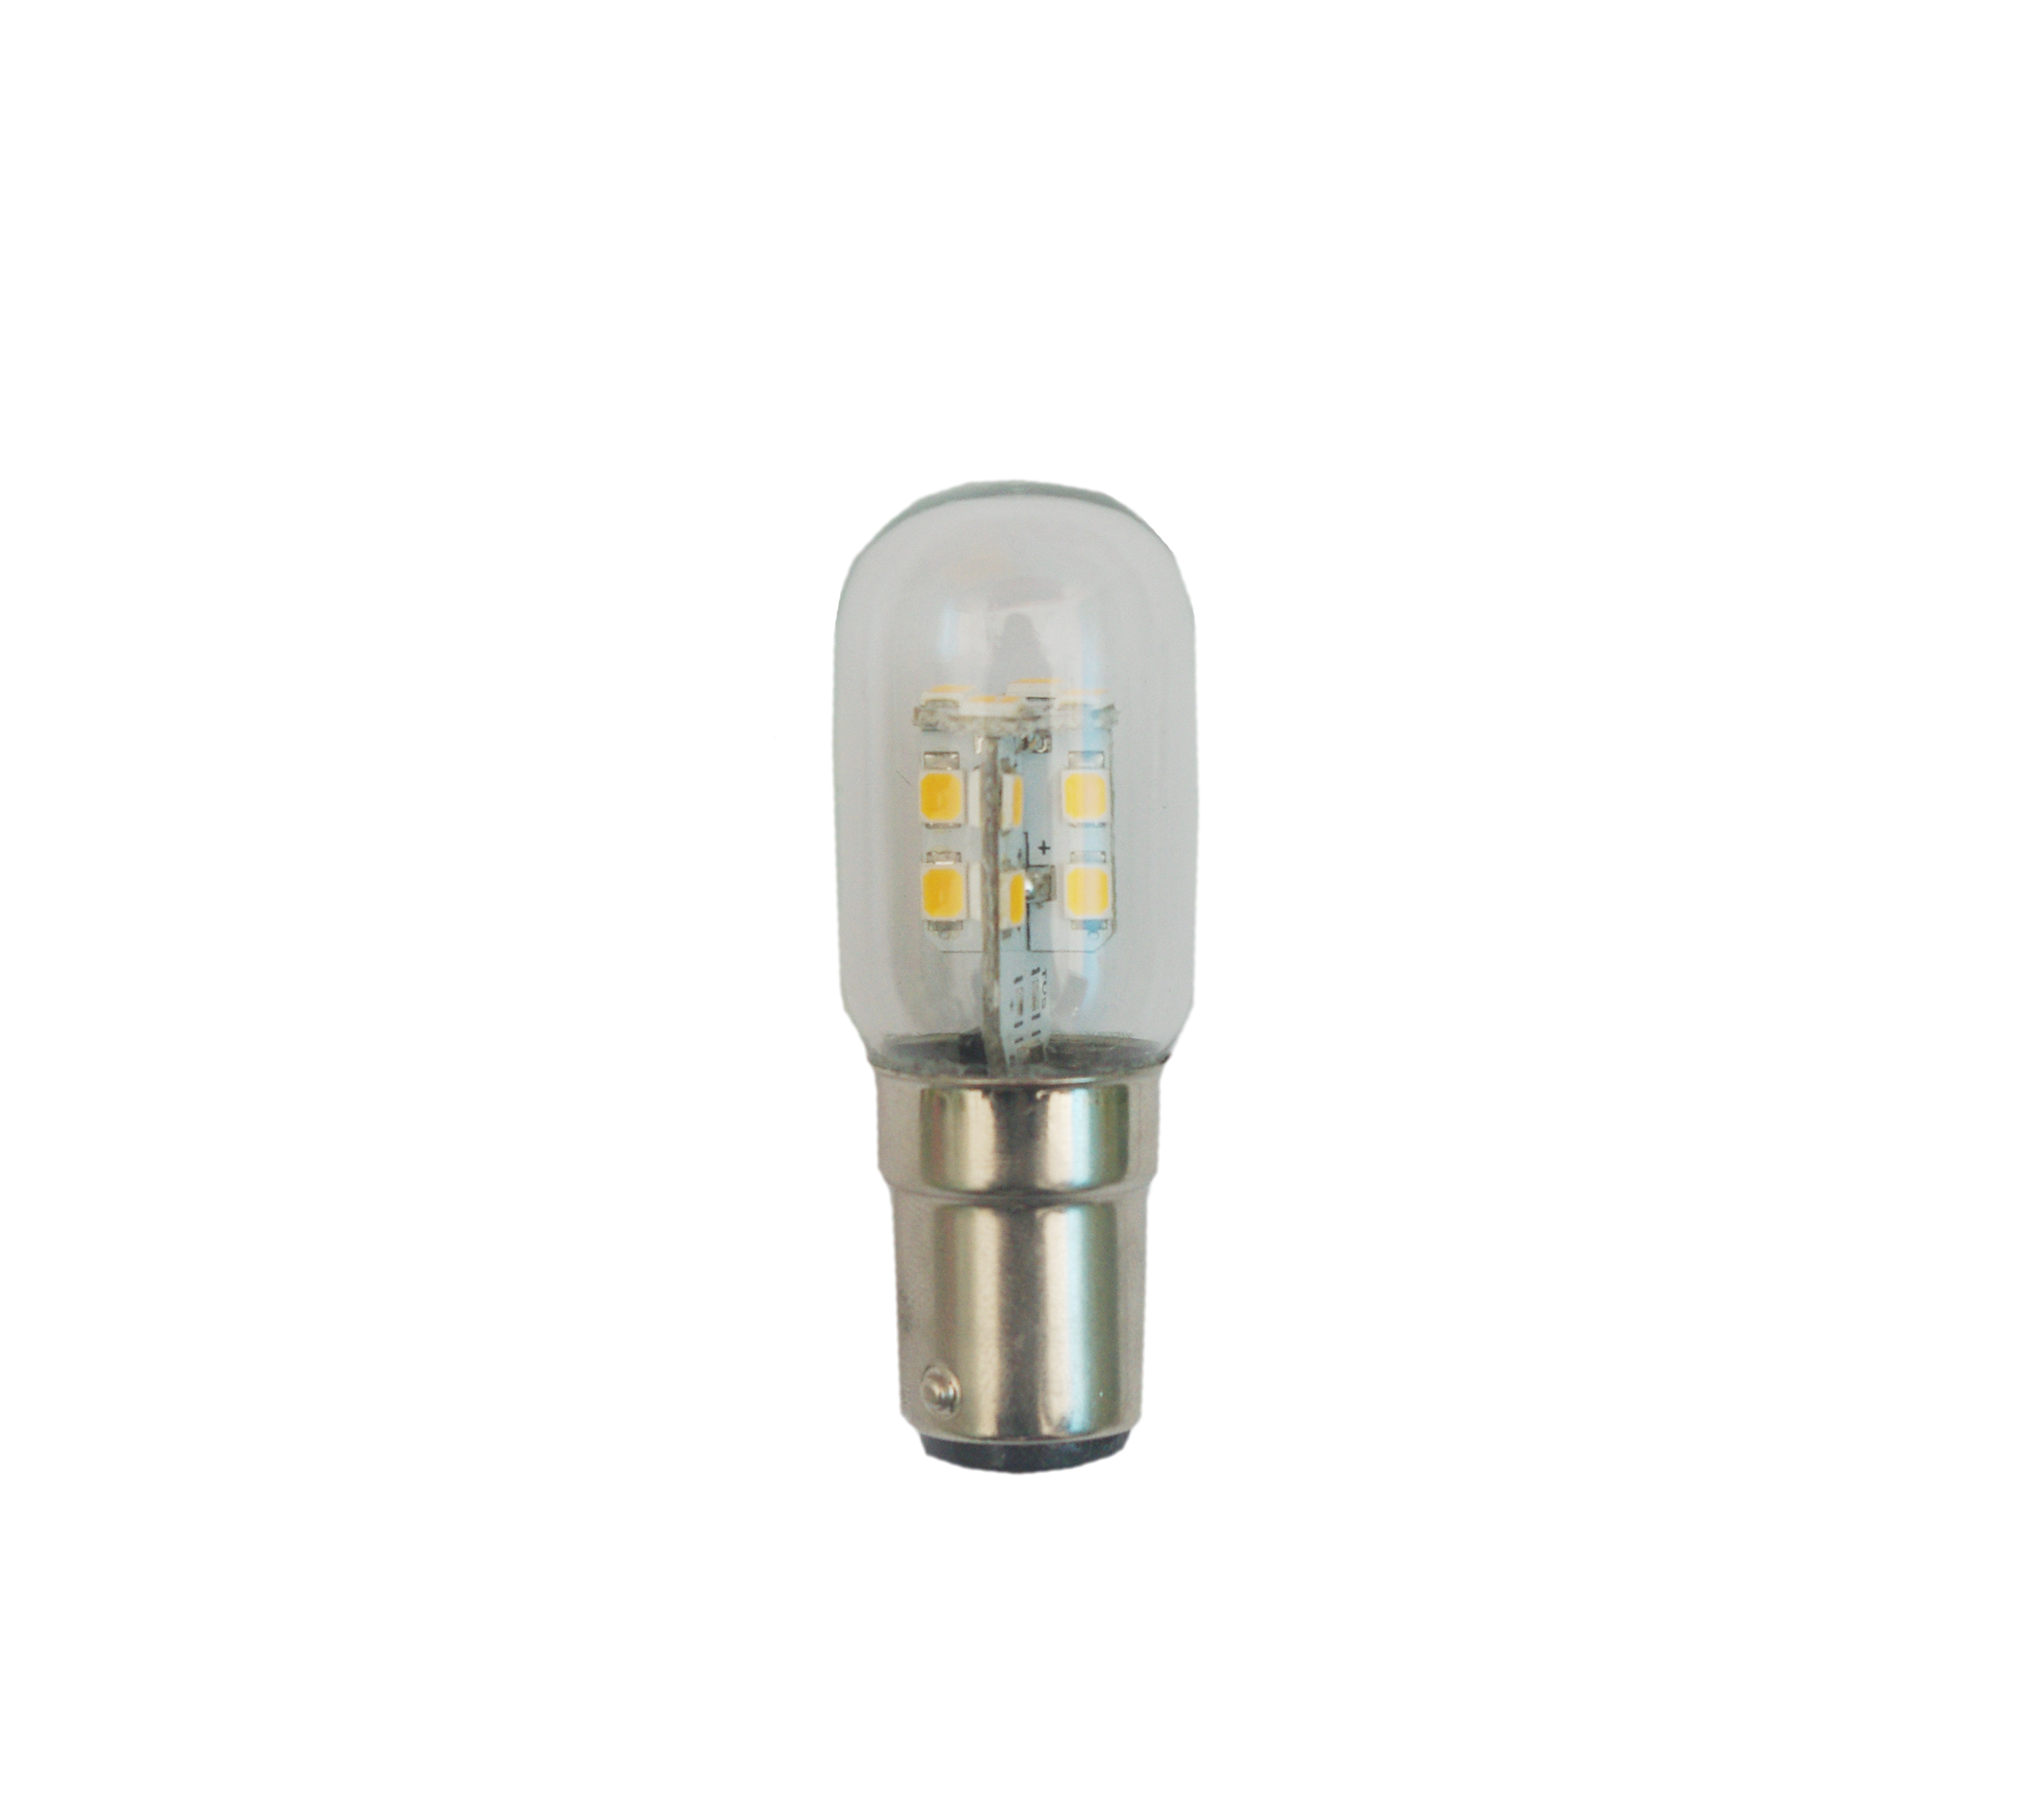 LED Frigidaire refrigerator light bulb